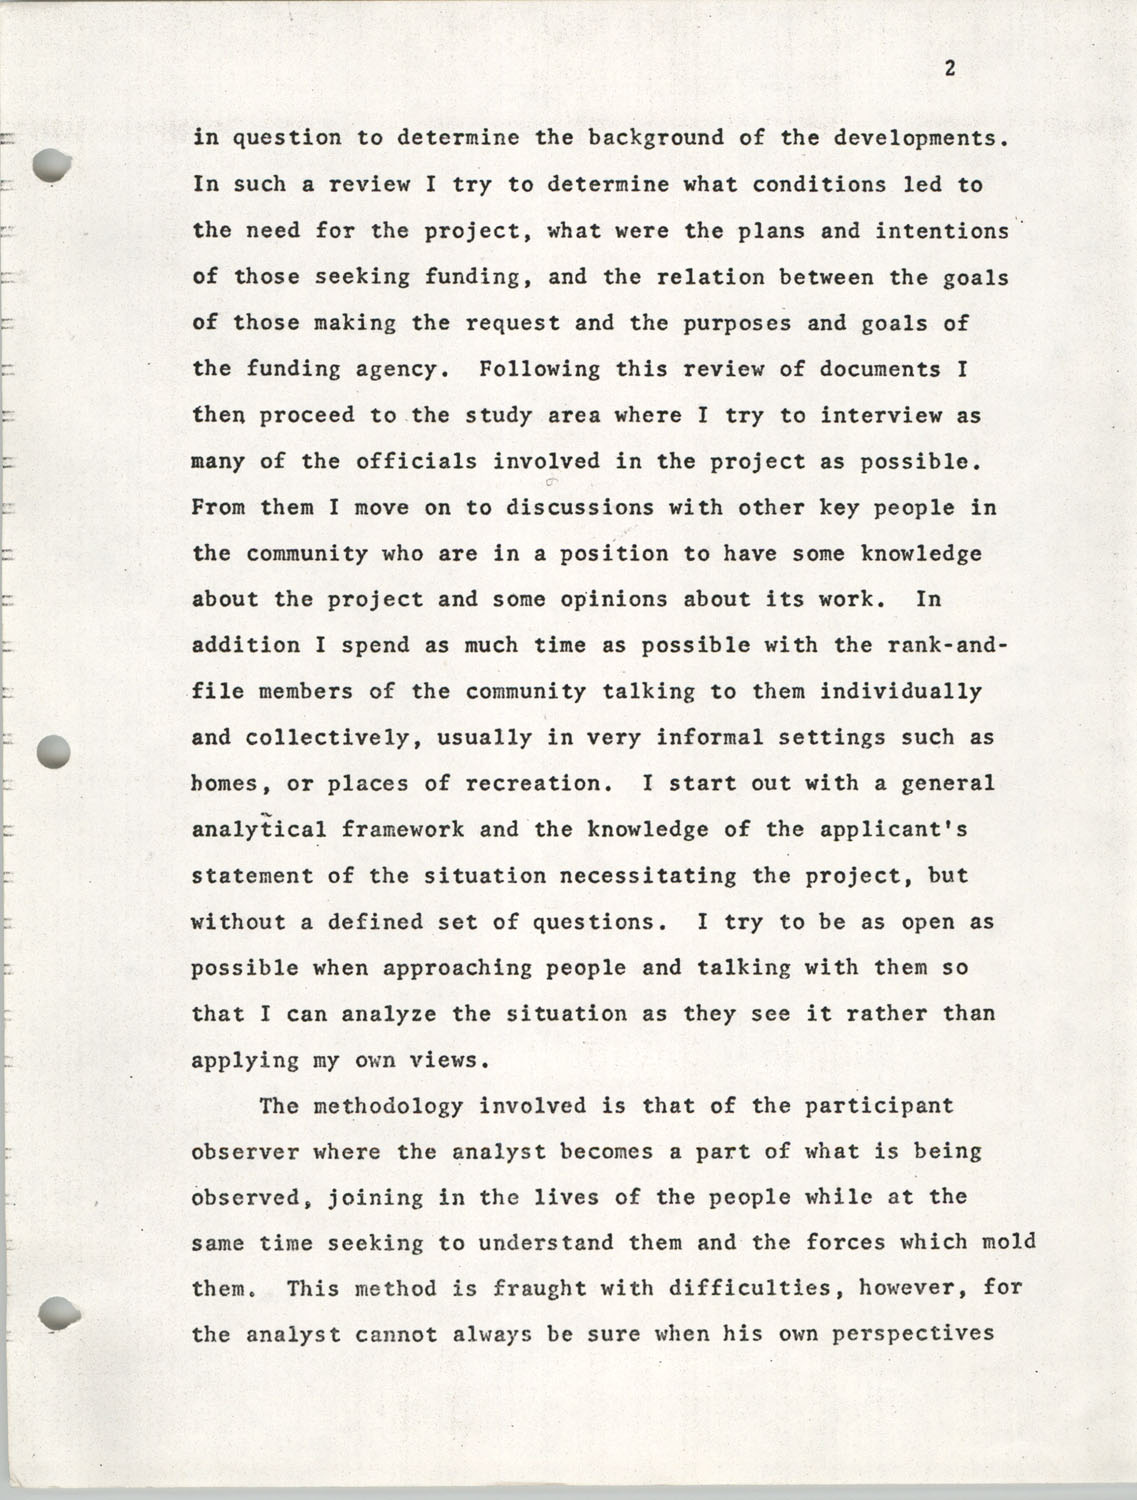 Citizen Participation. Democracy and Social Change, December 1, 1969, Page 2